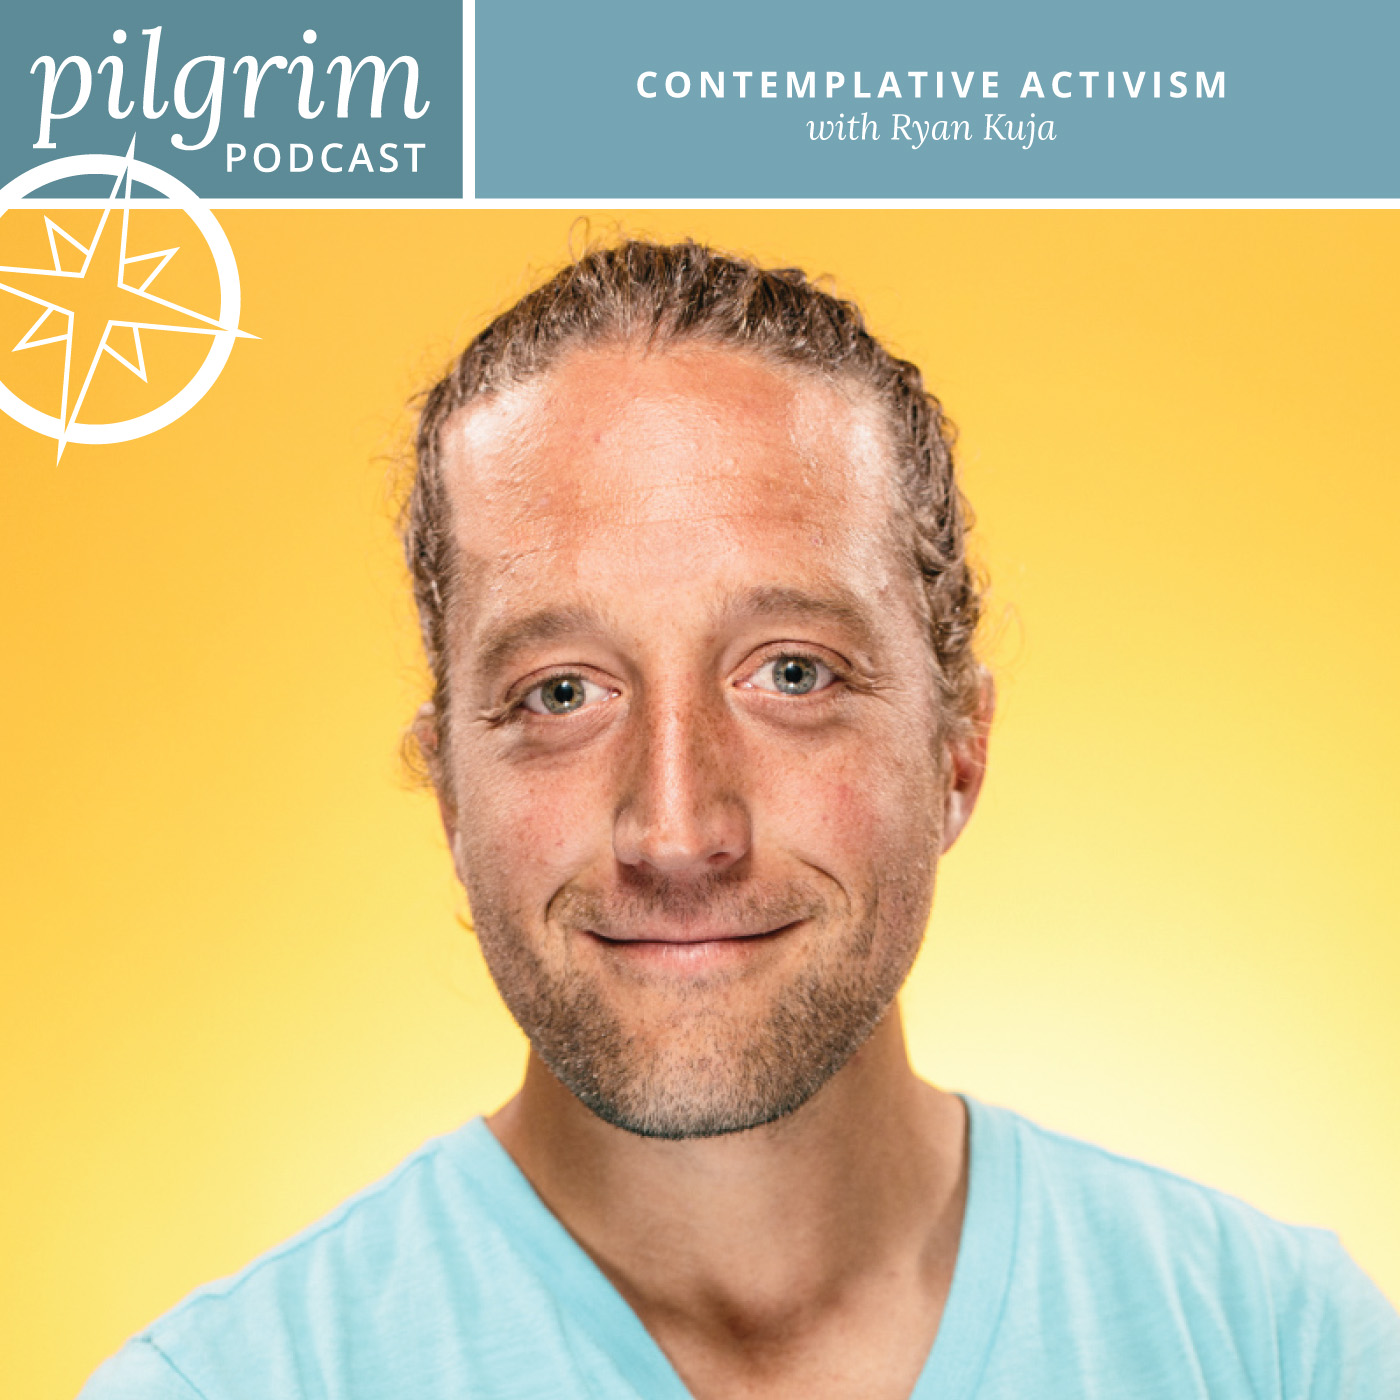 S1:E2 | Contemplative Activism with Ryan Kuja